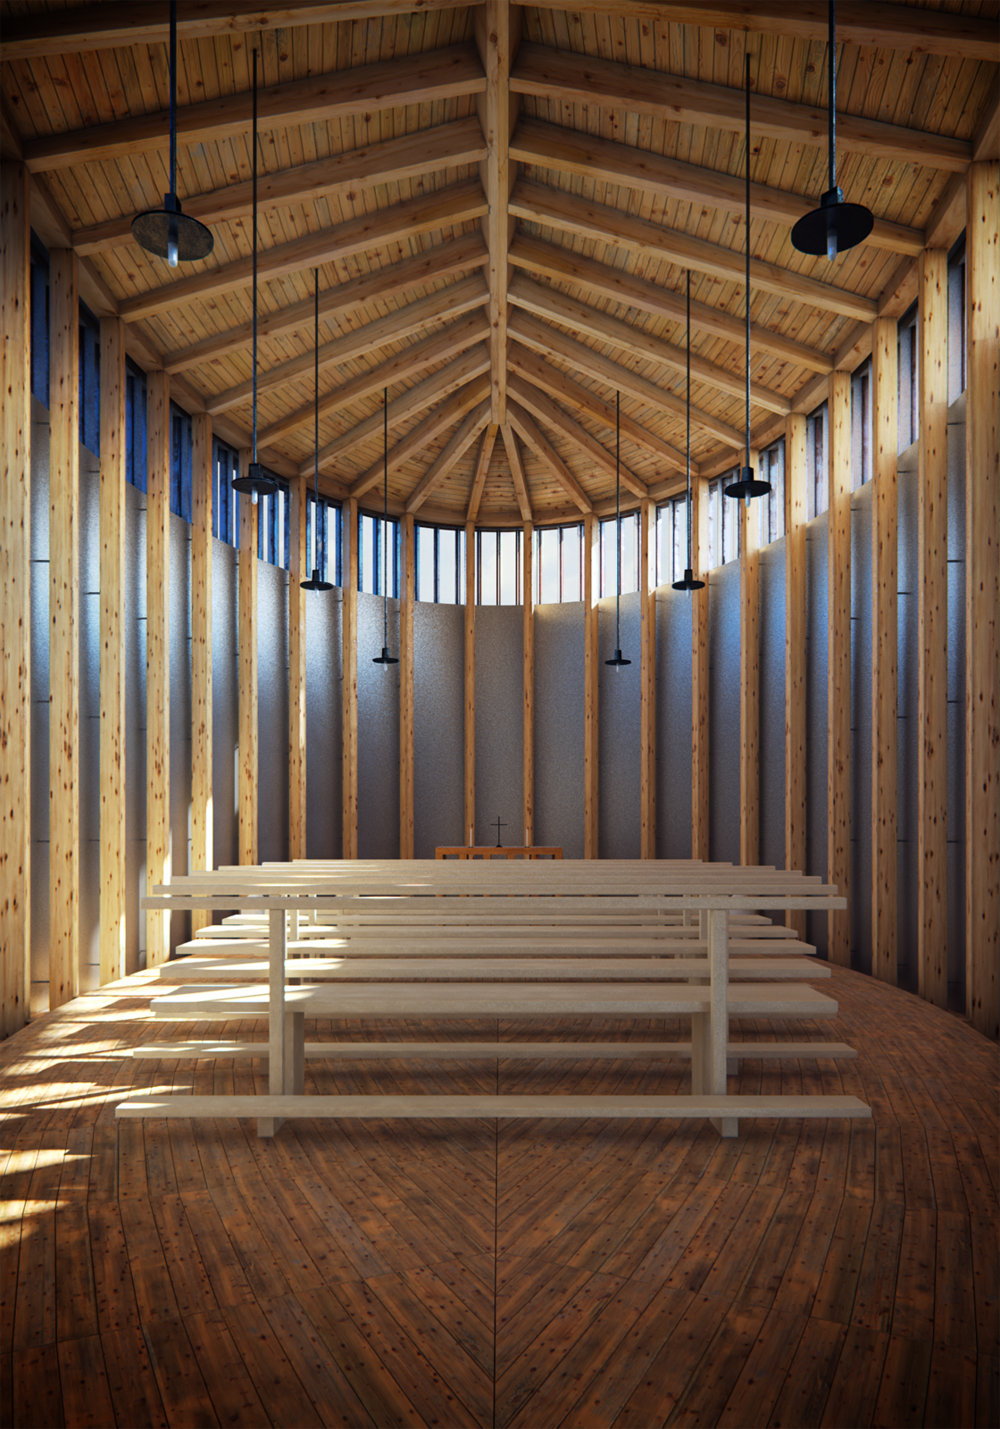 BRUDER KLAUS FIELD CHAPEL INTERIOR, GERMANY